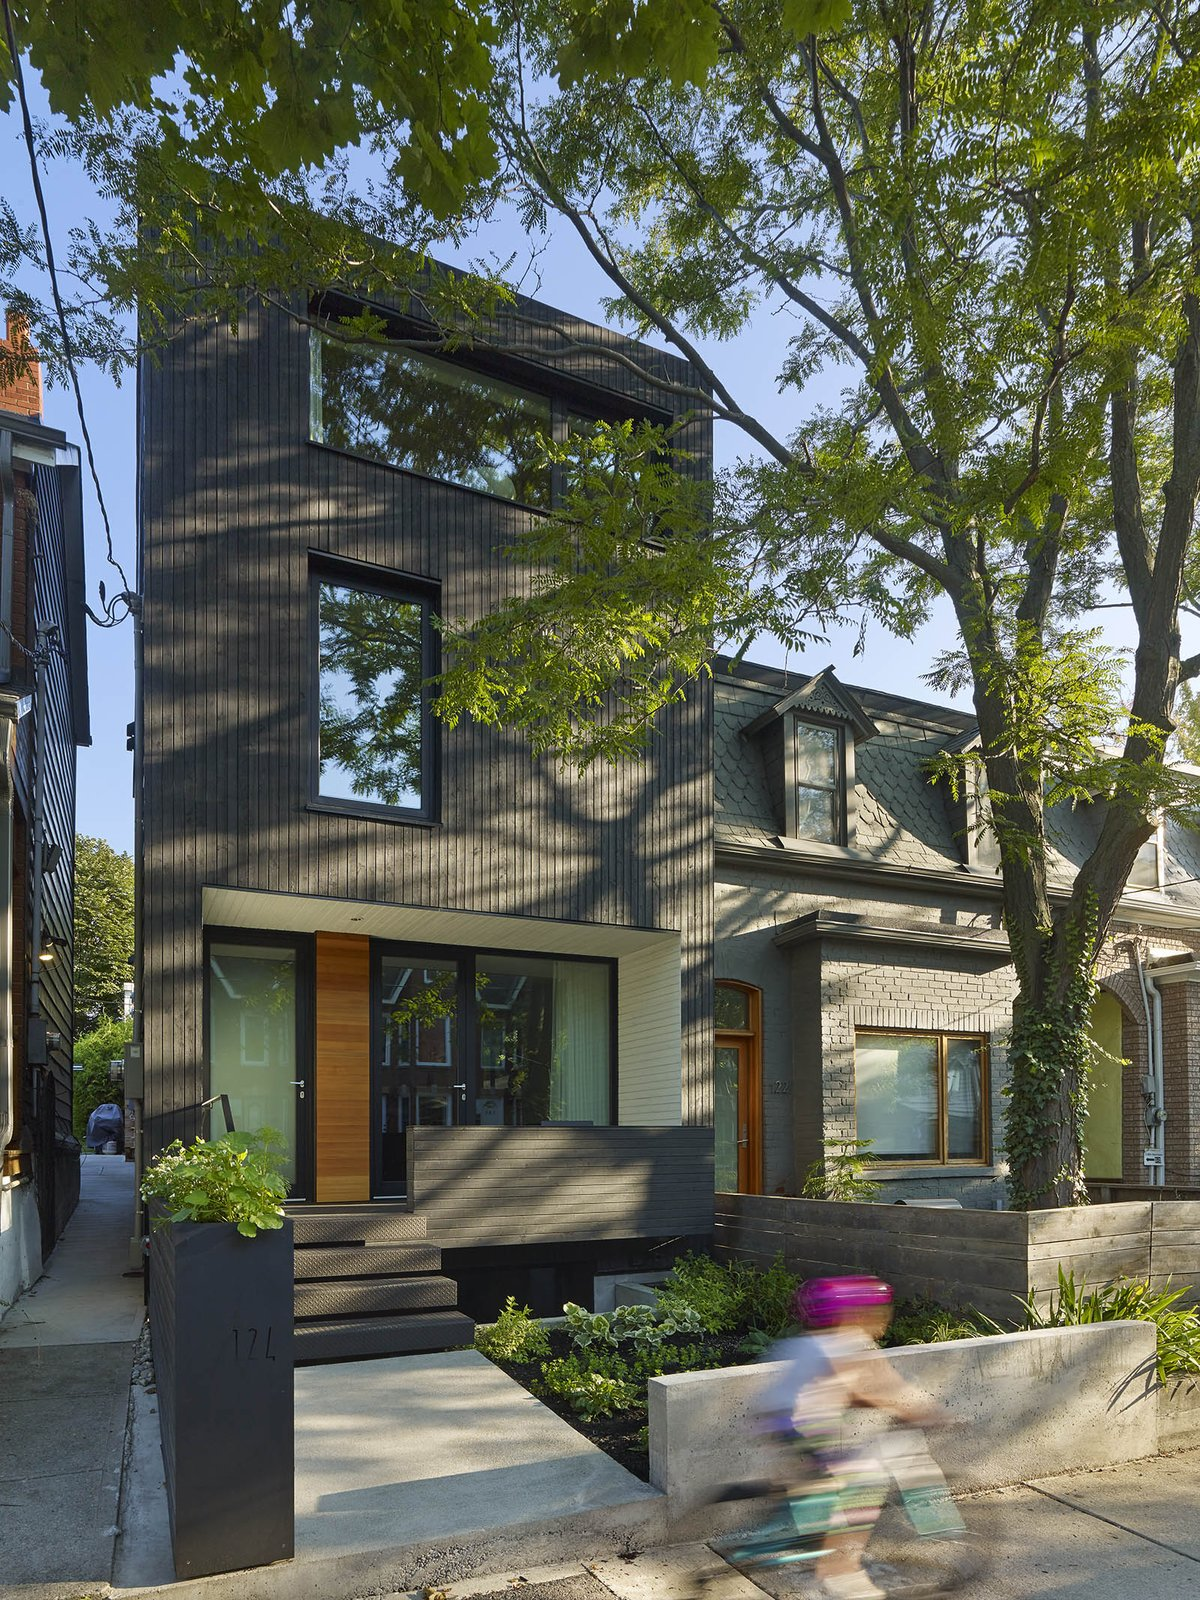 The all-black exterior cladding creates a quiet pause in the streetscape. By day, it acts as an abstract canvas for shadow play from the boulevard trees. By night, it has the quality of an austere lantern.